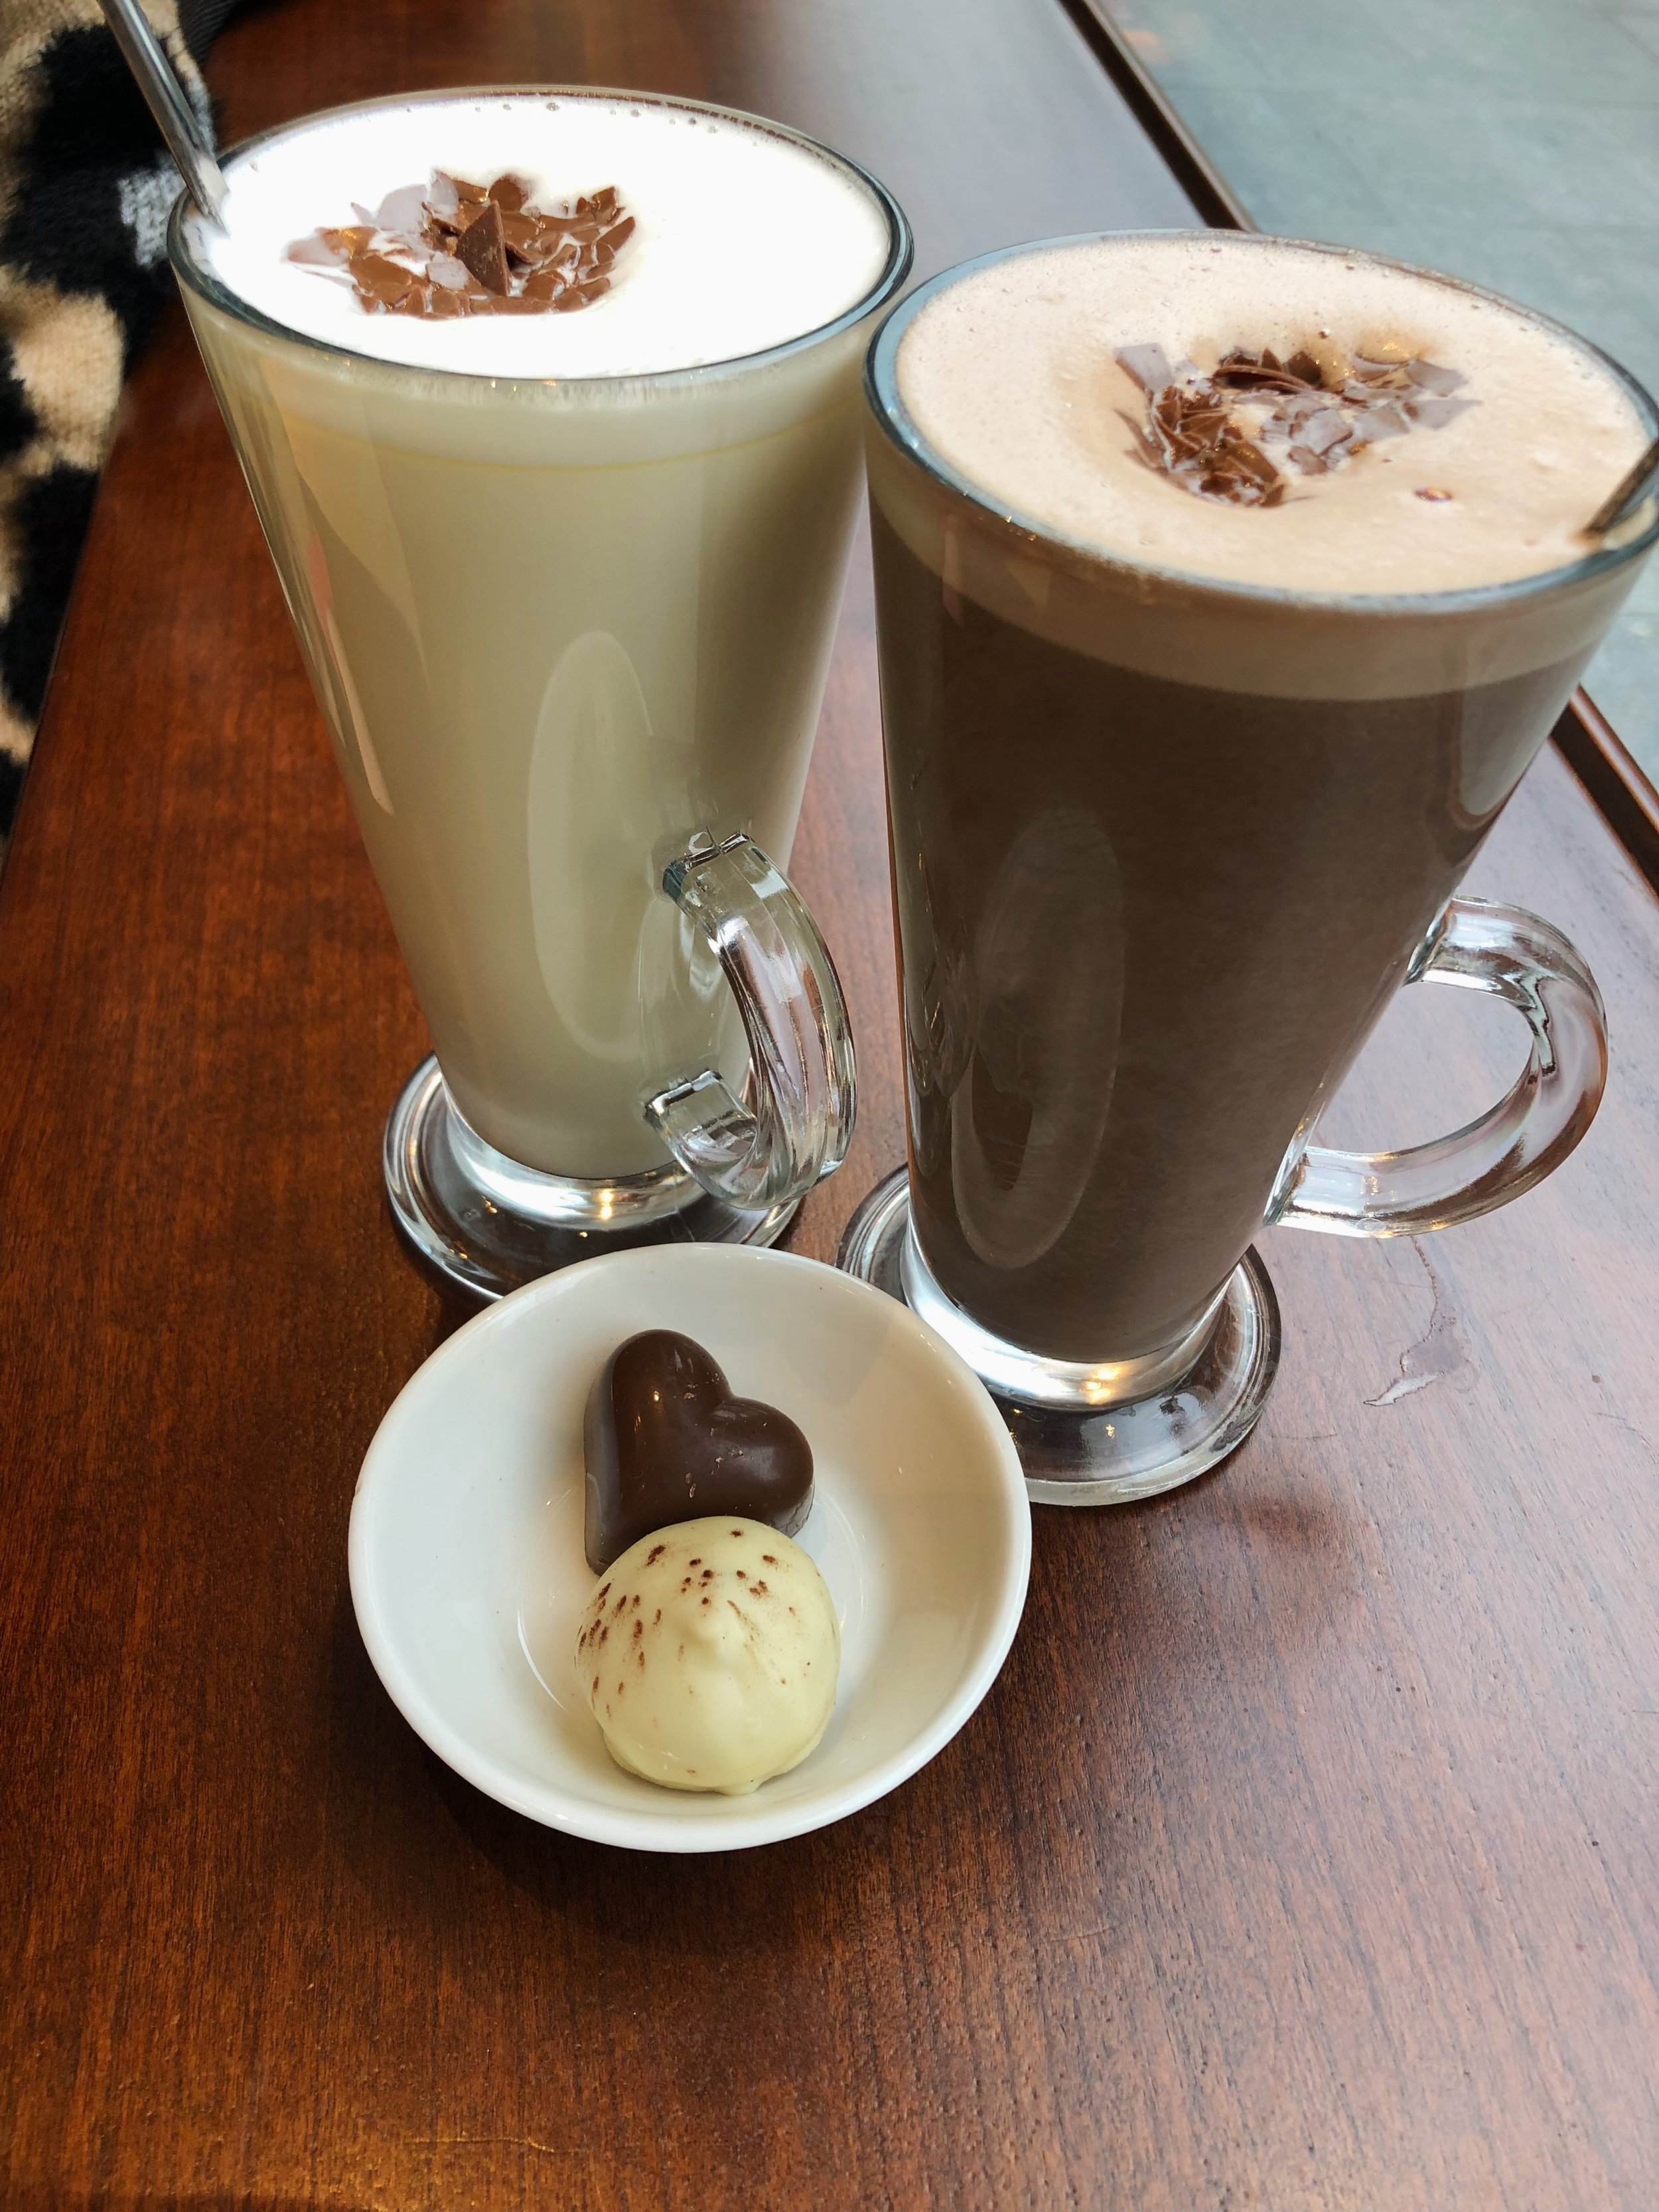 Mine and Dave's Hot Chocolates from   Butler's   with our chocolates